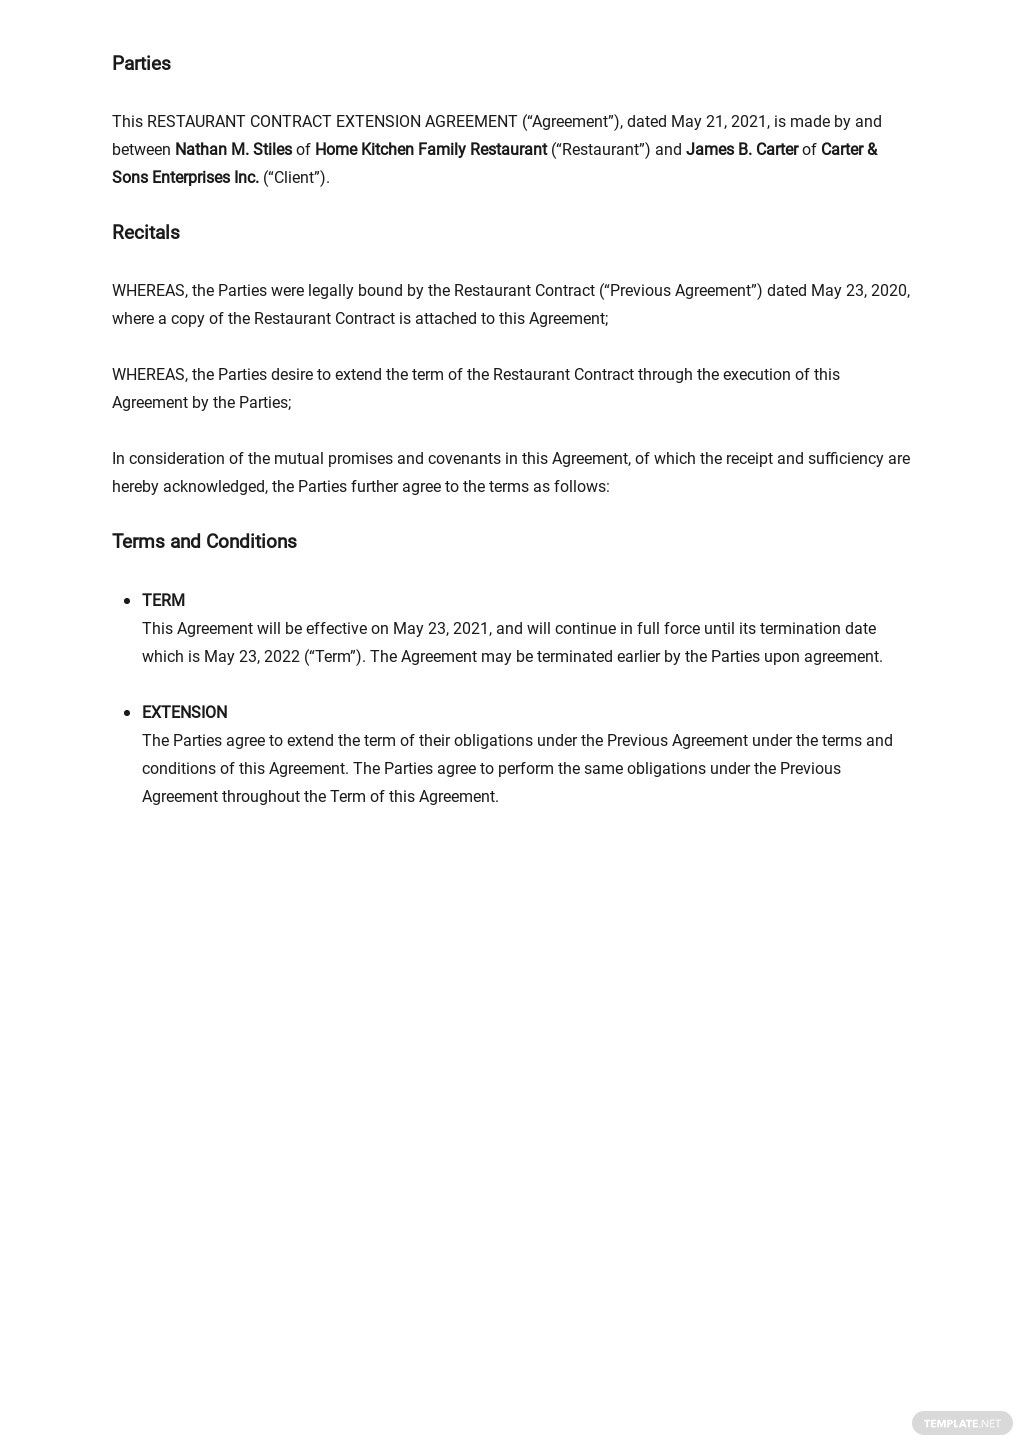 Restaurant Contract Extension Agreement Template 1.jpe